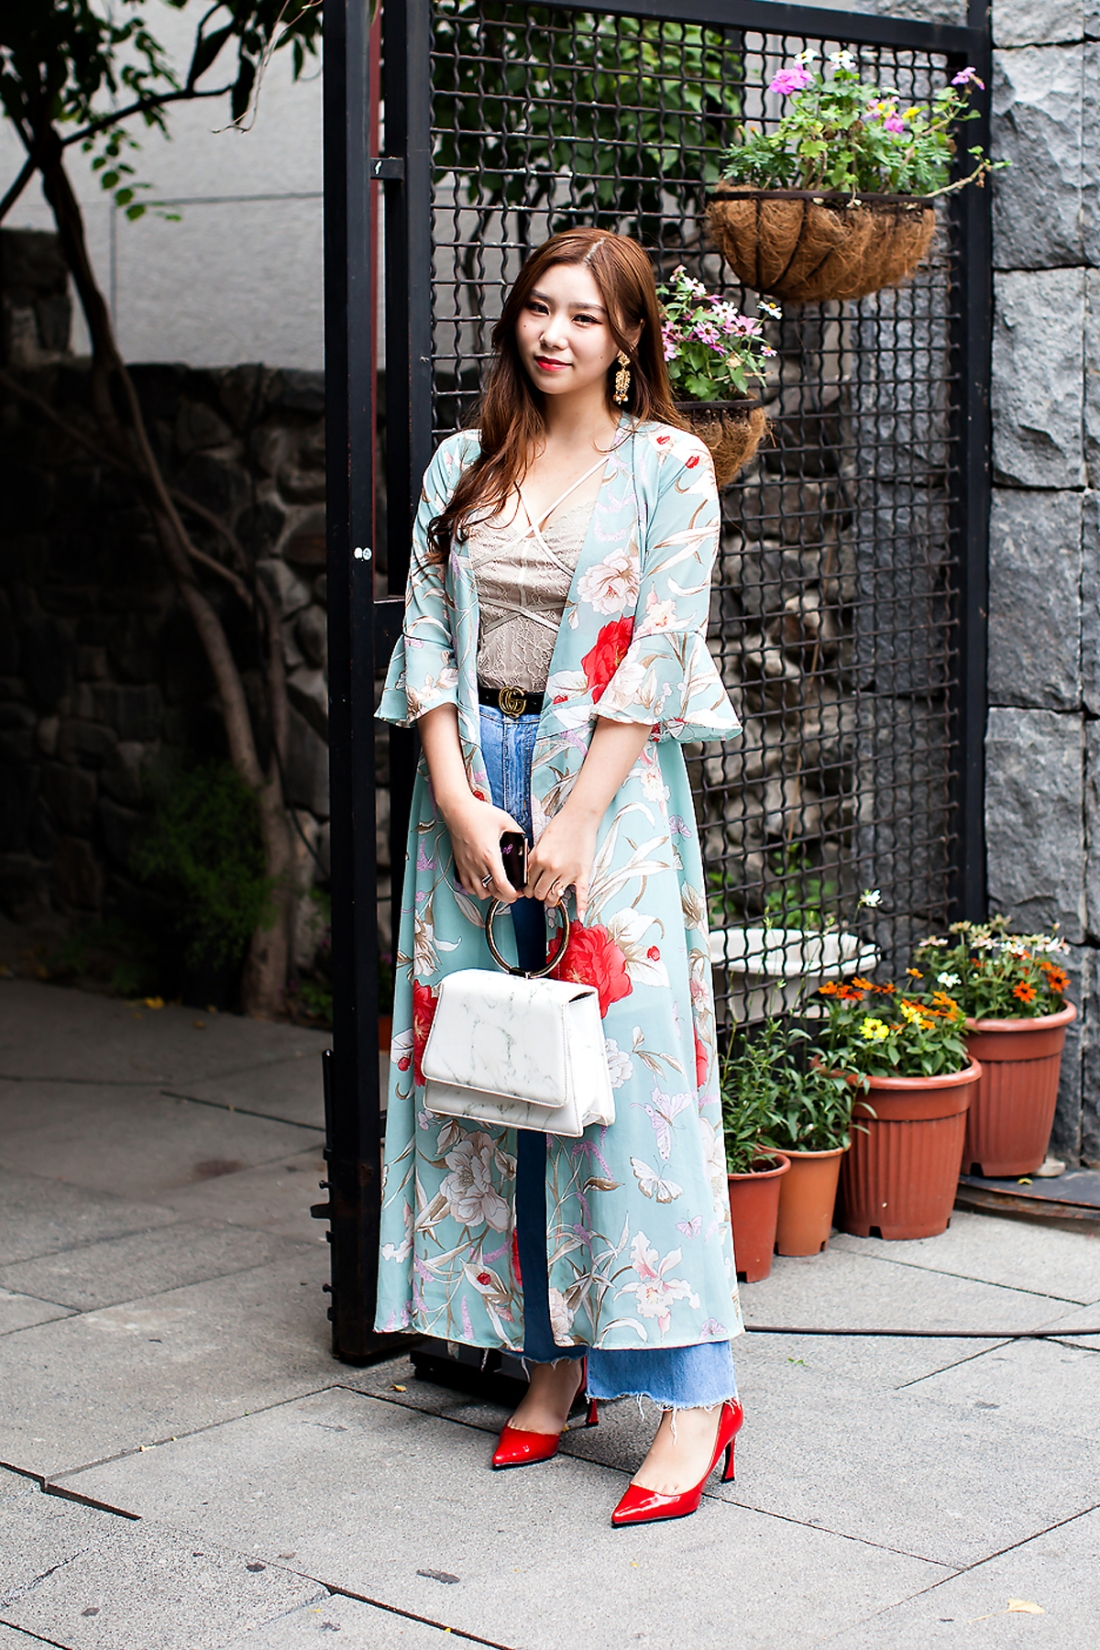 Ryang Woomoon, Street Fashion 2017 in Seoul.jpg